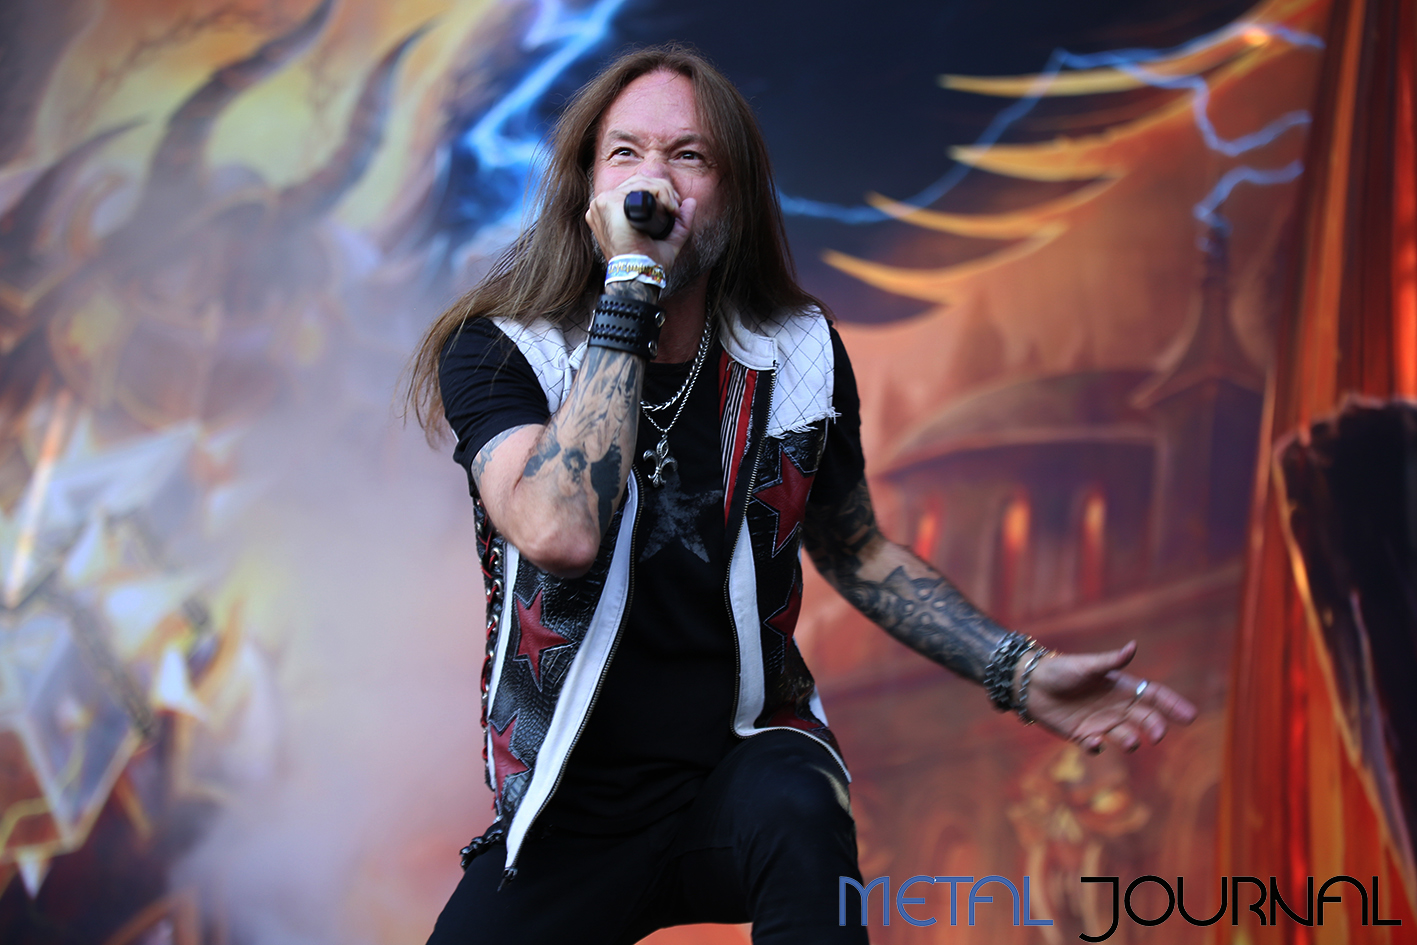 hammerfall - leyendas del rock 2019 metal journal pic 1